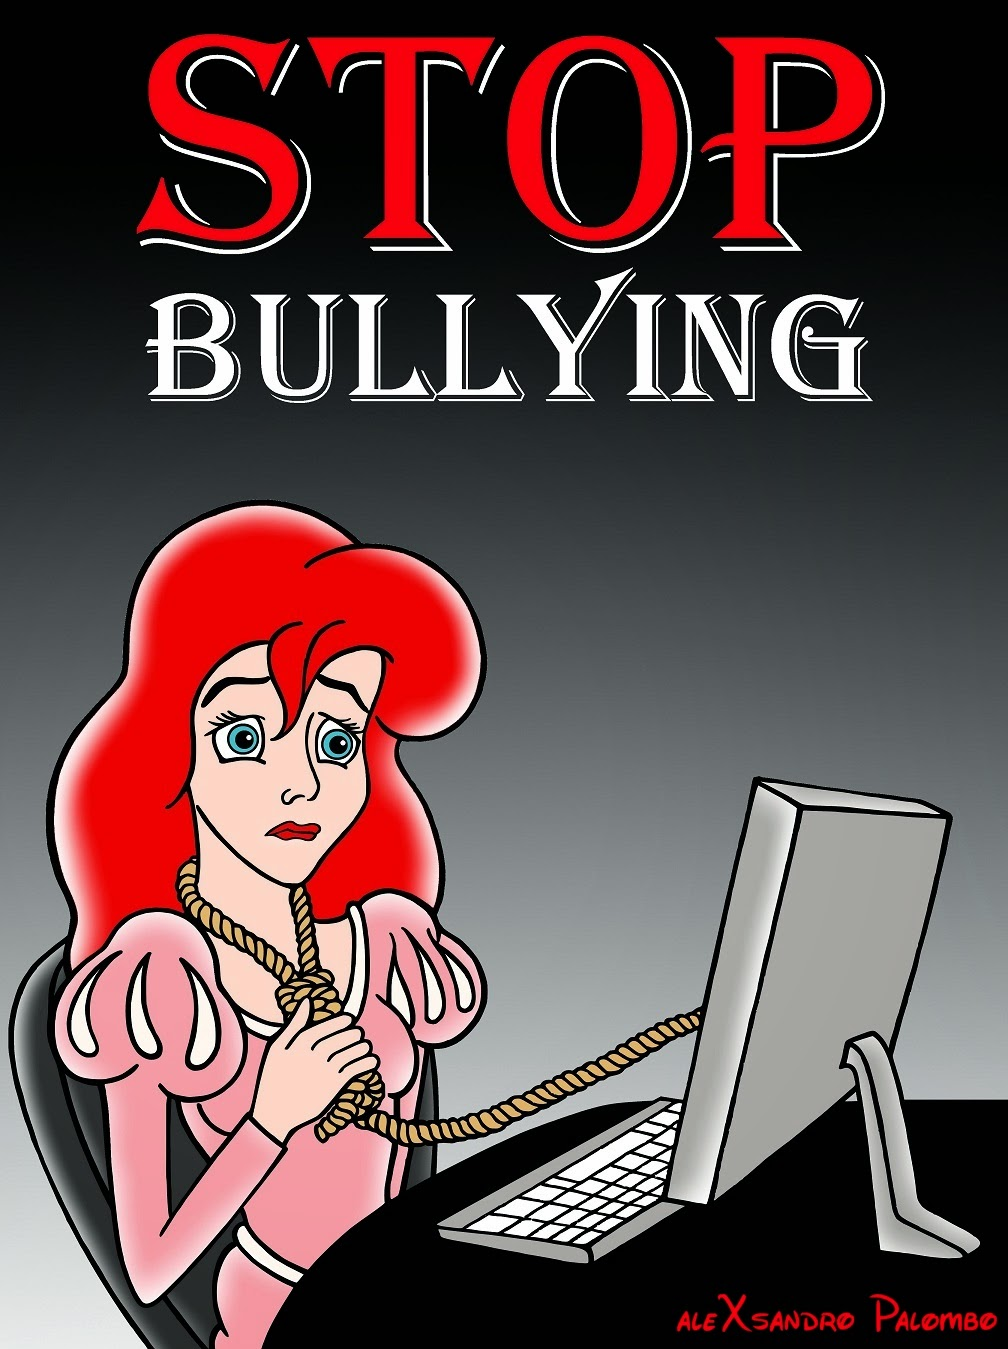 bullying abuse and people It comes in many forms – such as verbal, physical or online abuse – and bullying   bullying can take many forms and can affect people in many different ways.